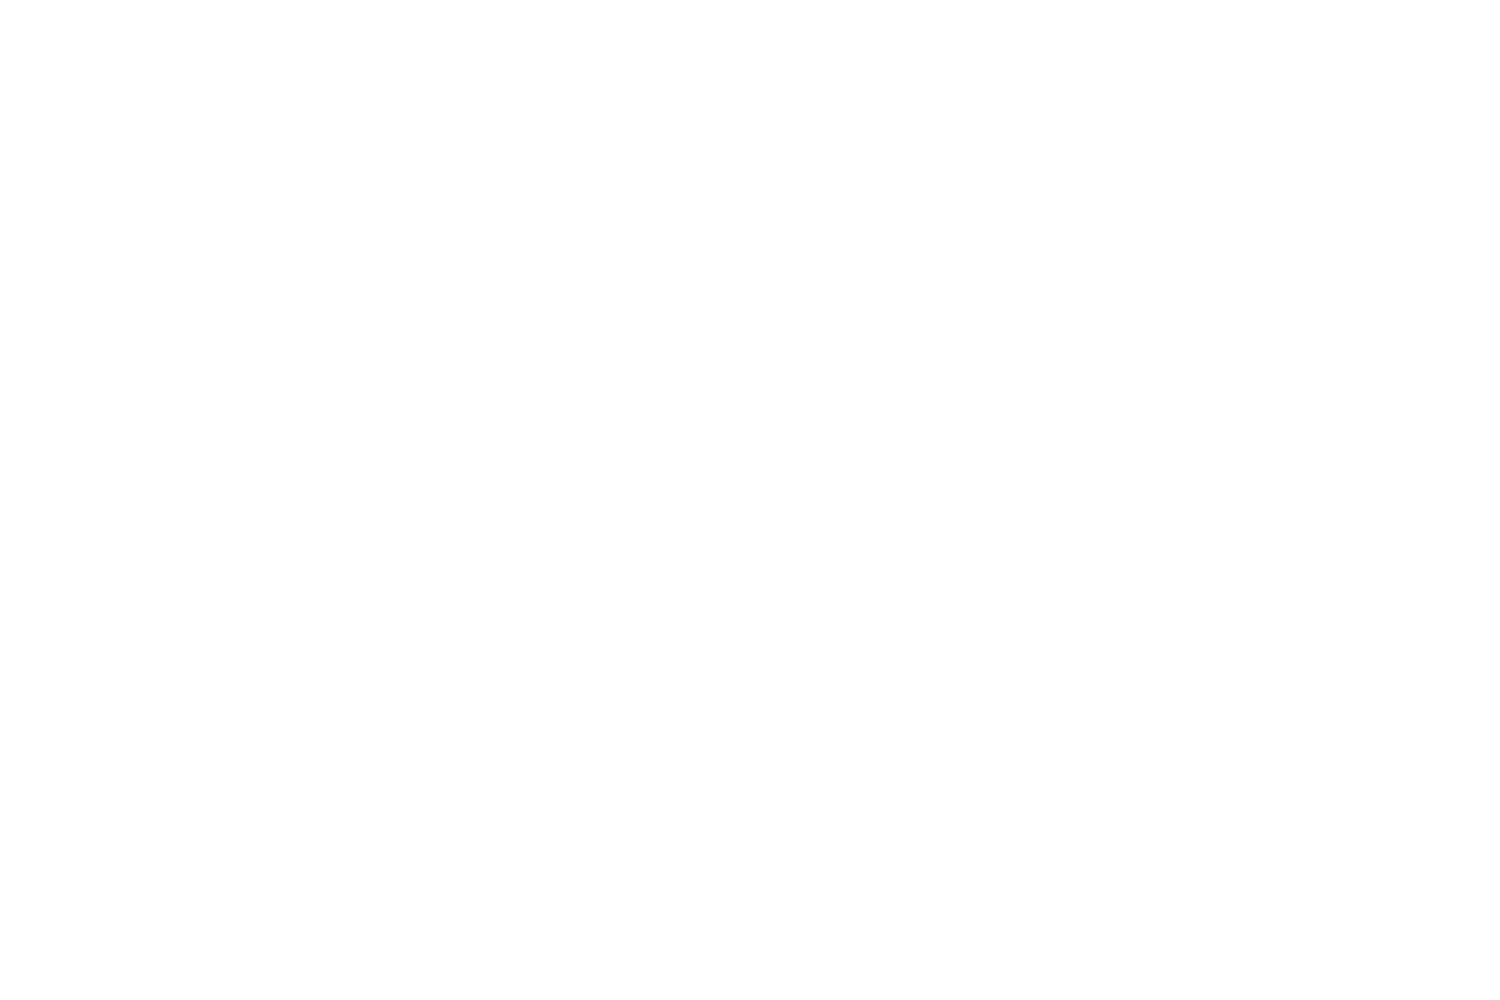 Tim Collins Media - Macedon Ranges Photographer